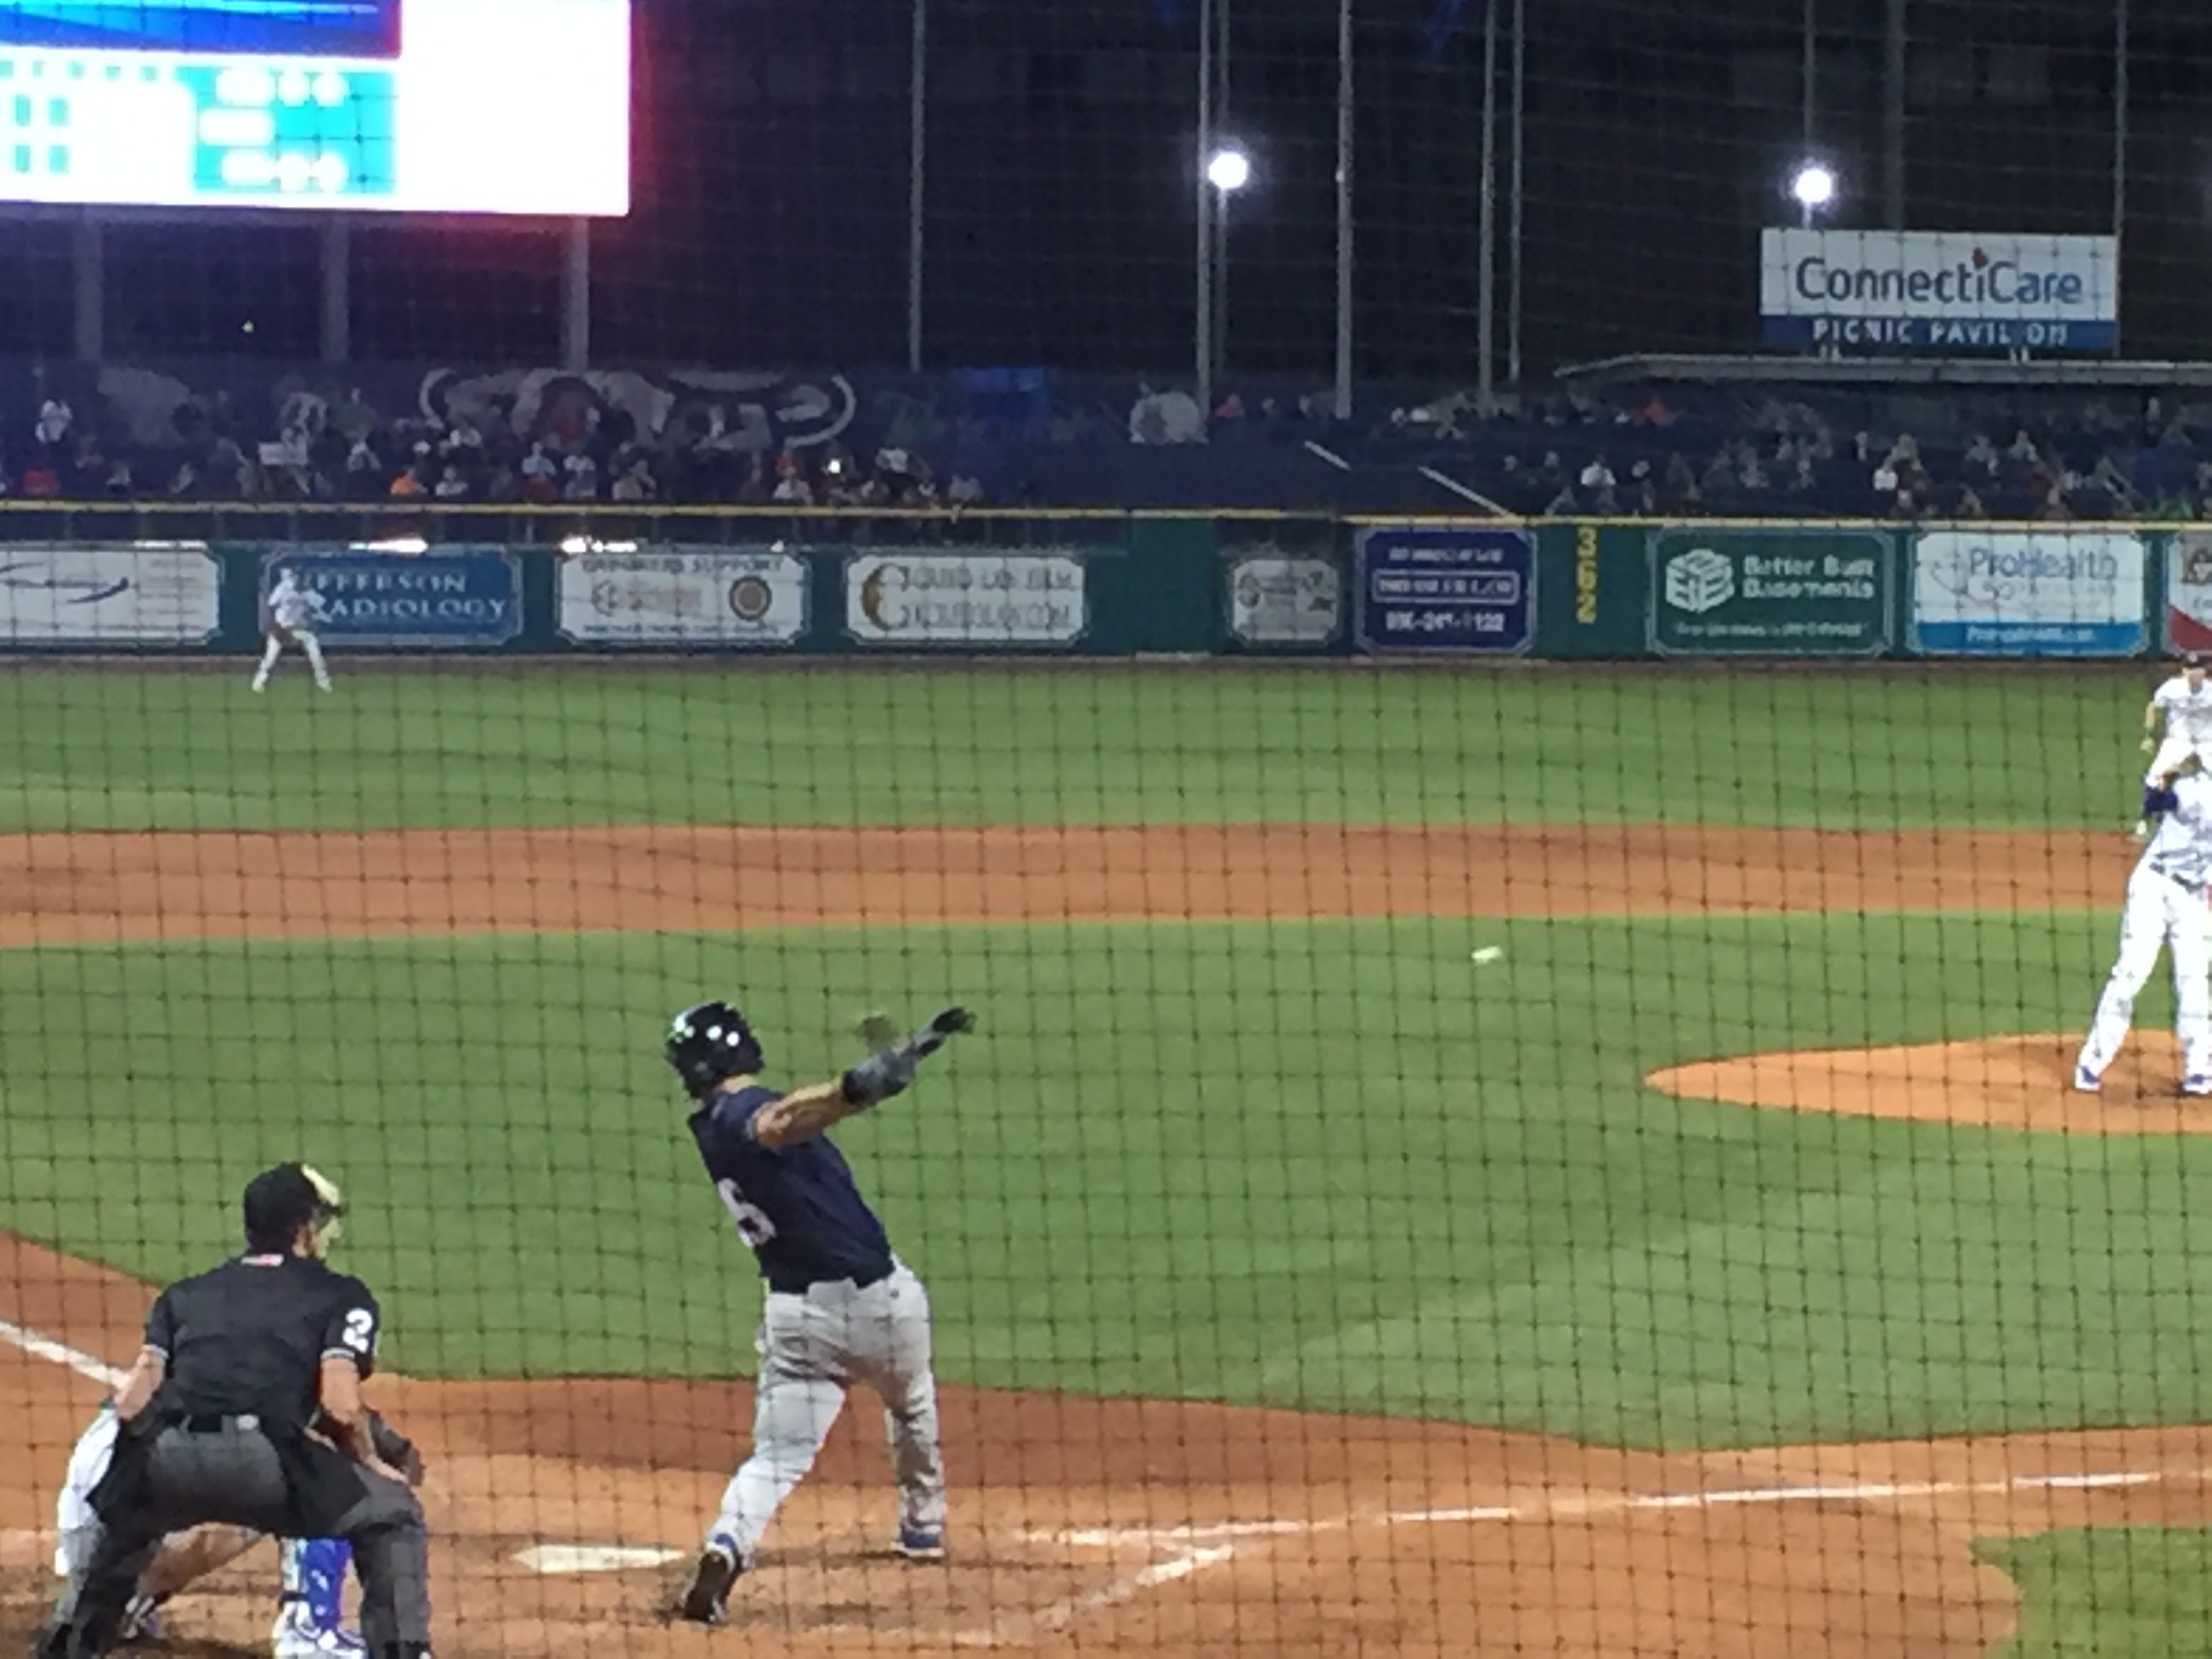 Tim Tebow at Bat